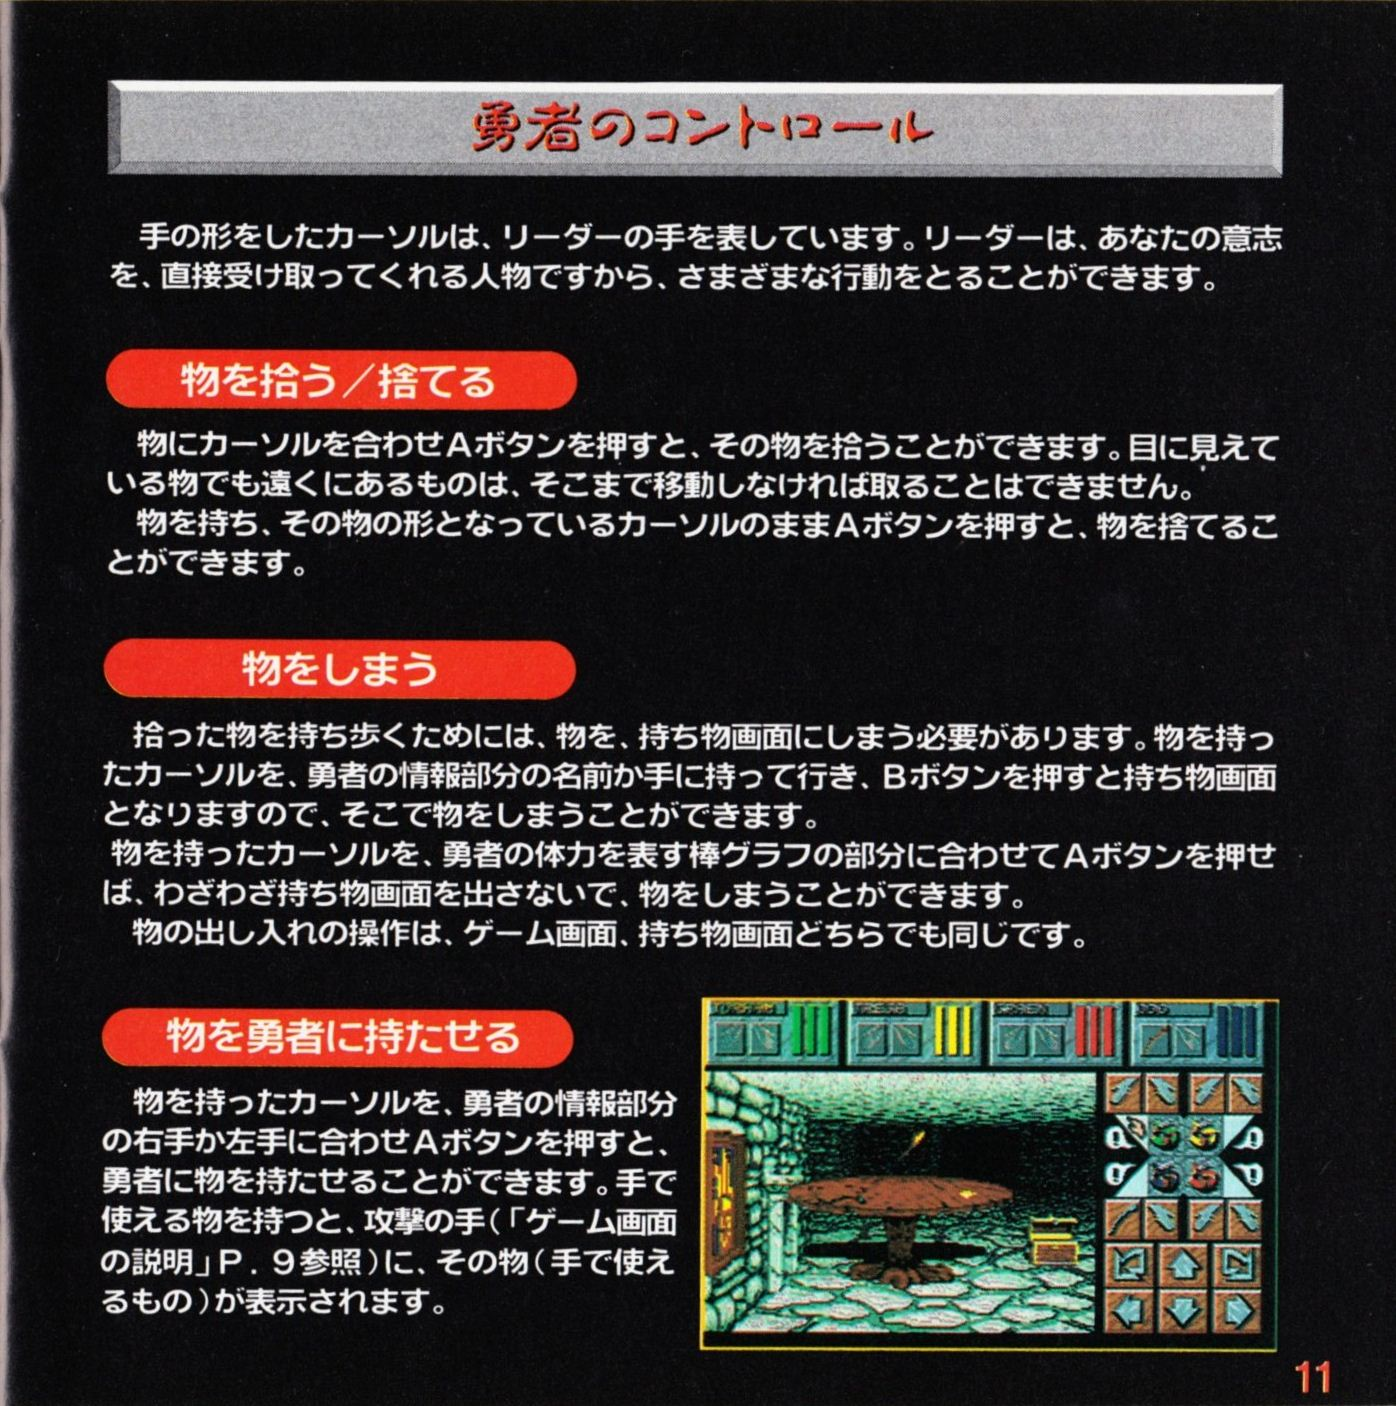 Game - Dungeon Master II - JP - Mega CD - Booklet - Page 013 - Scan